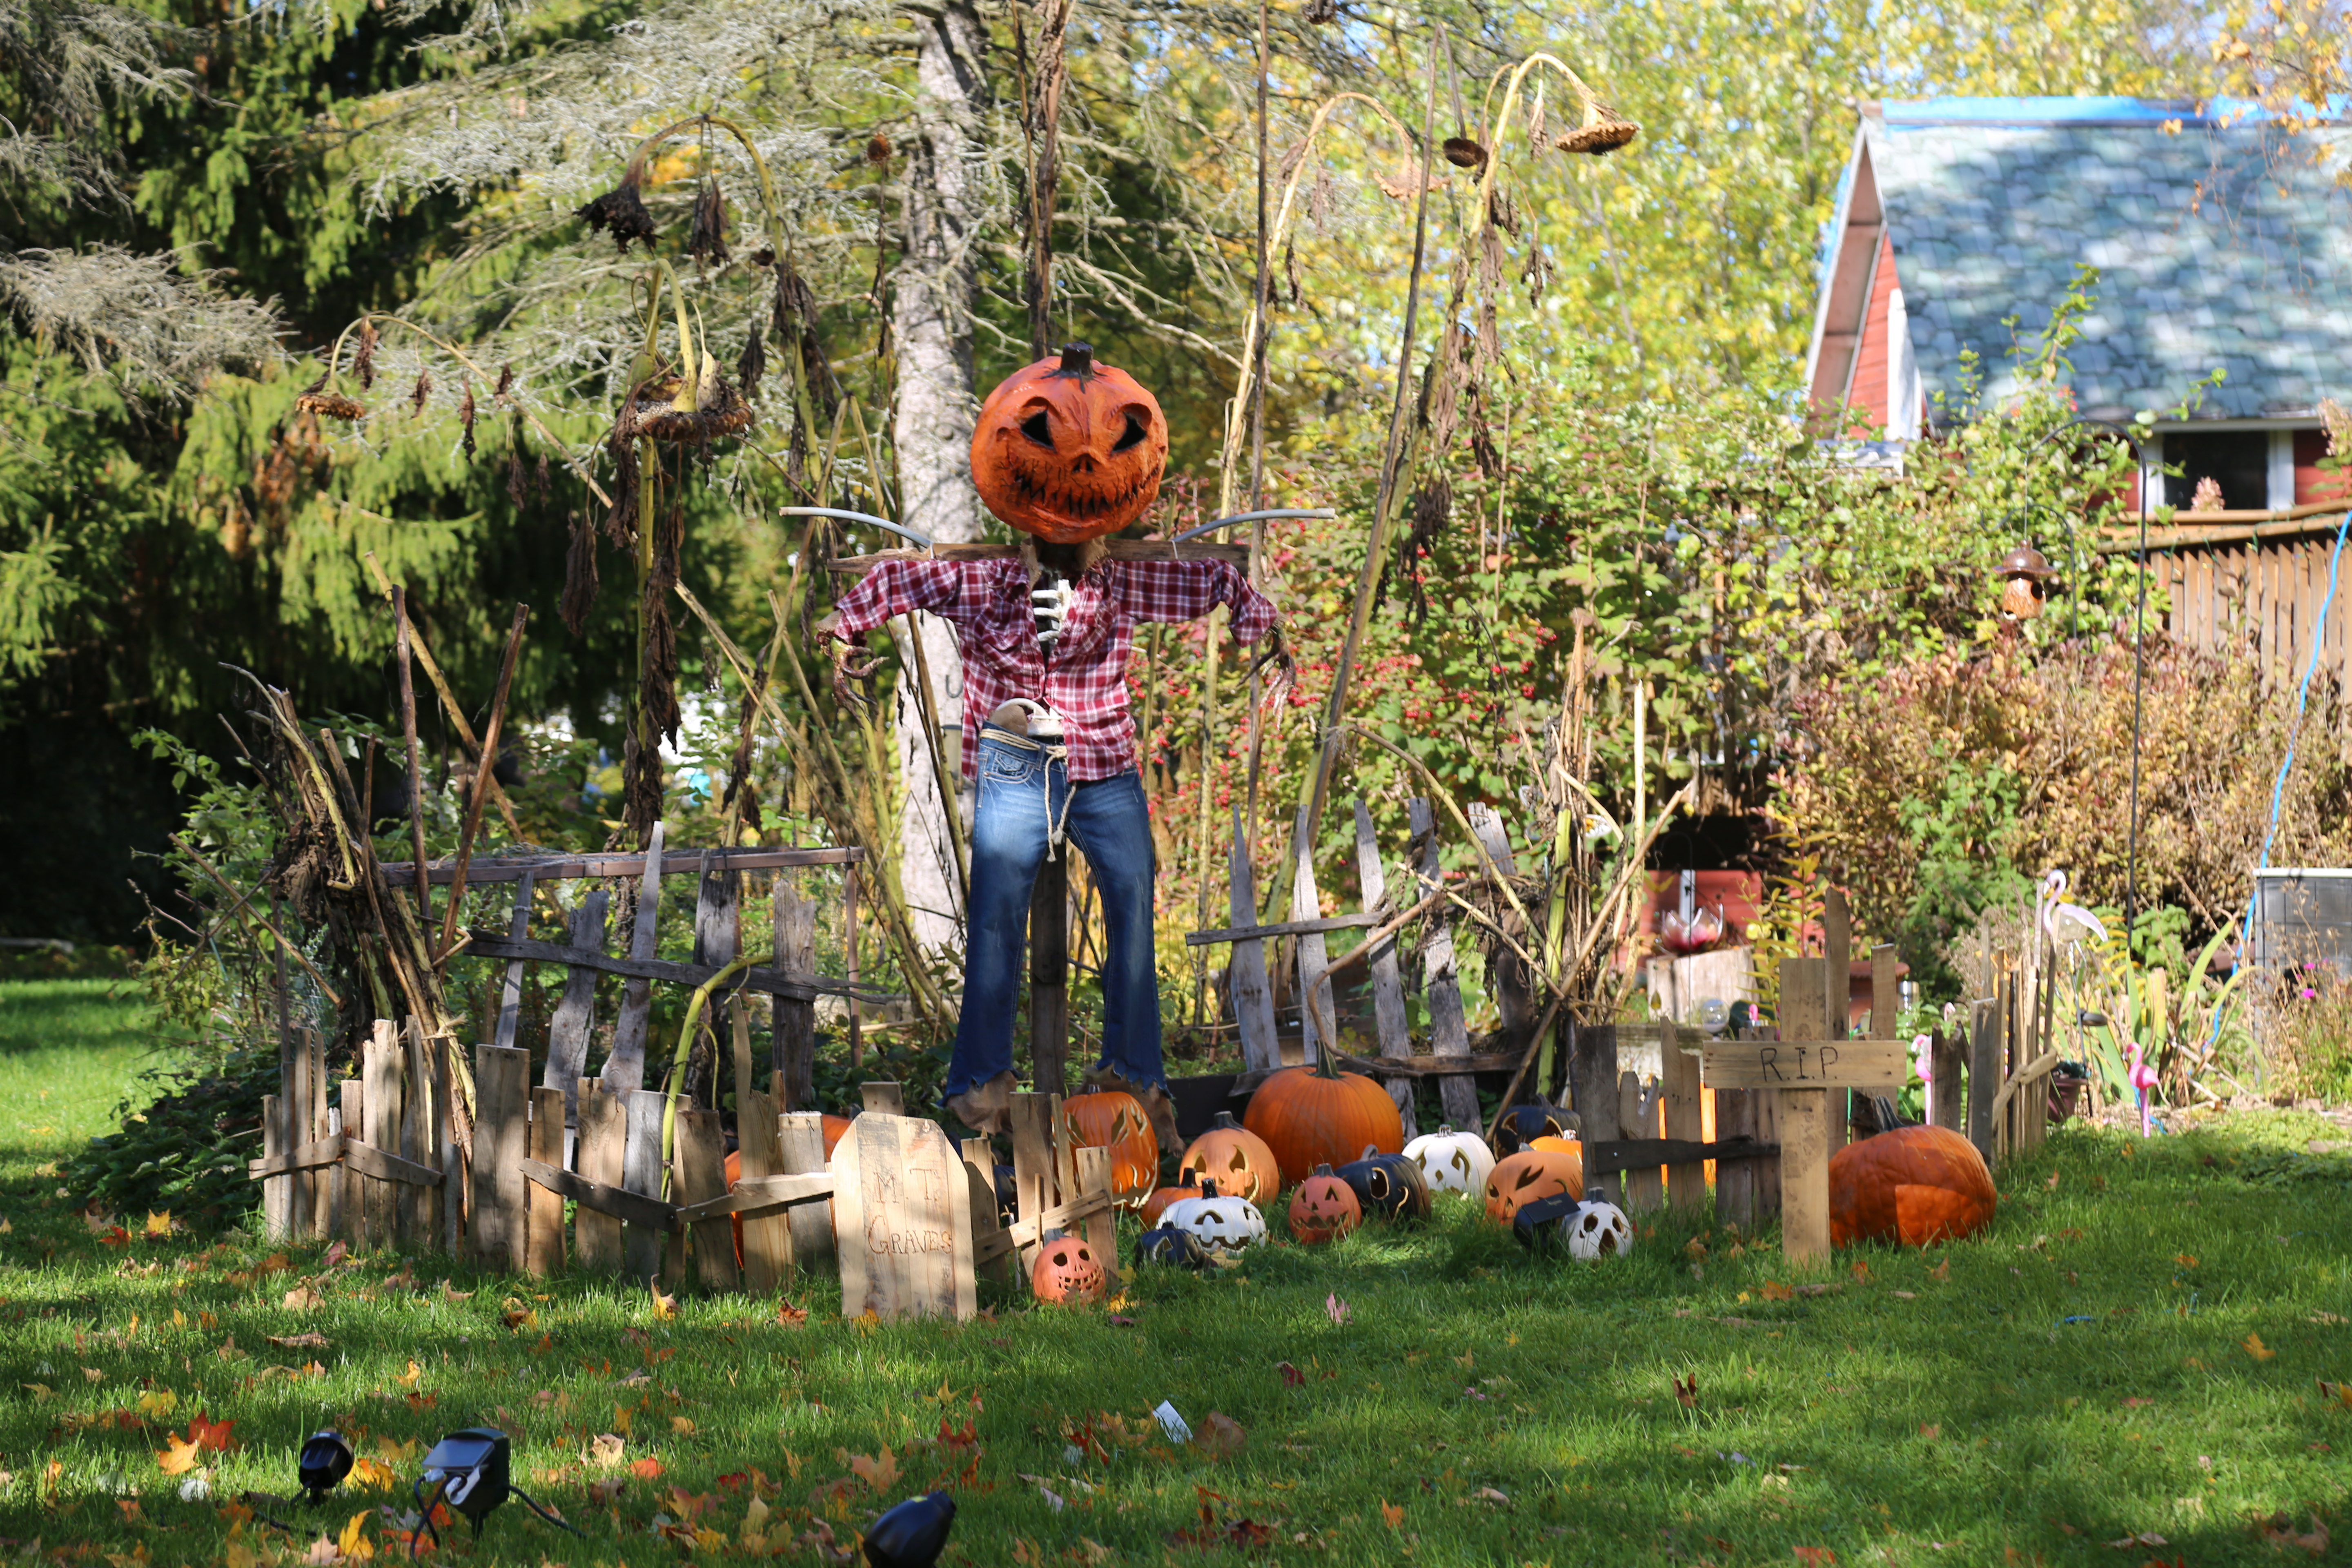 jack o lantern decorations outdoors in a yard